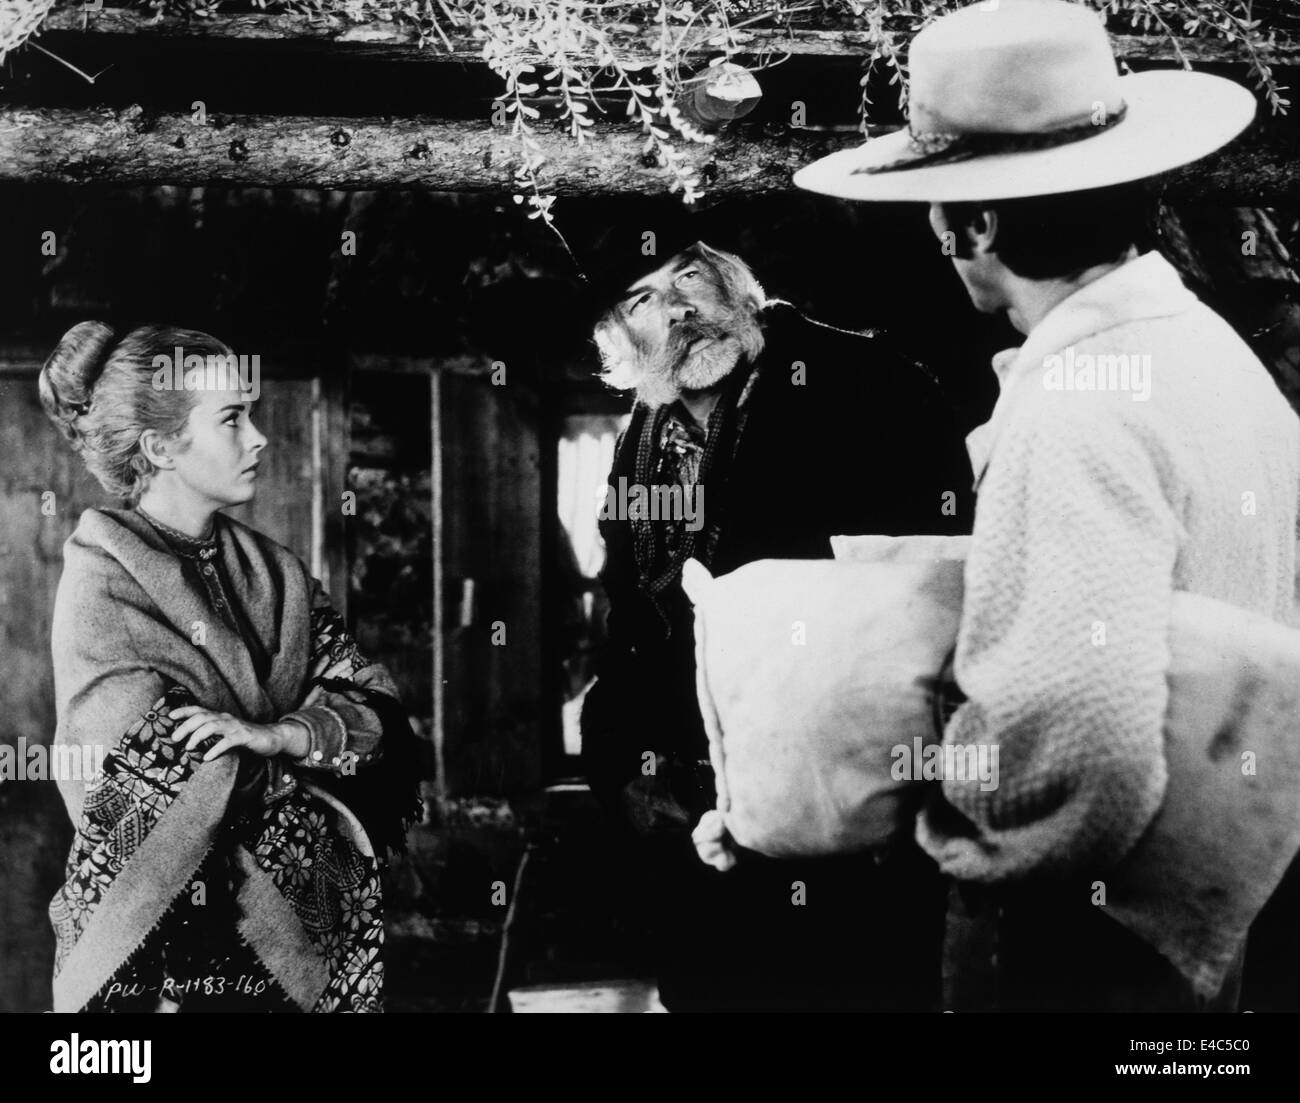 Jean Seberg, Lee Marvin, Clint Eastwood, on-set of the Film, 'Paint Your Wagon', 1969 - Stock Image